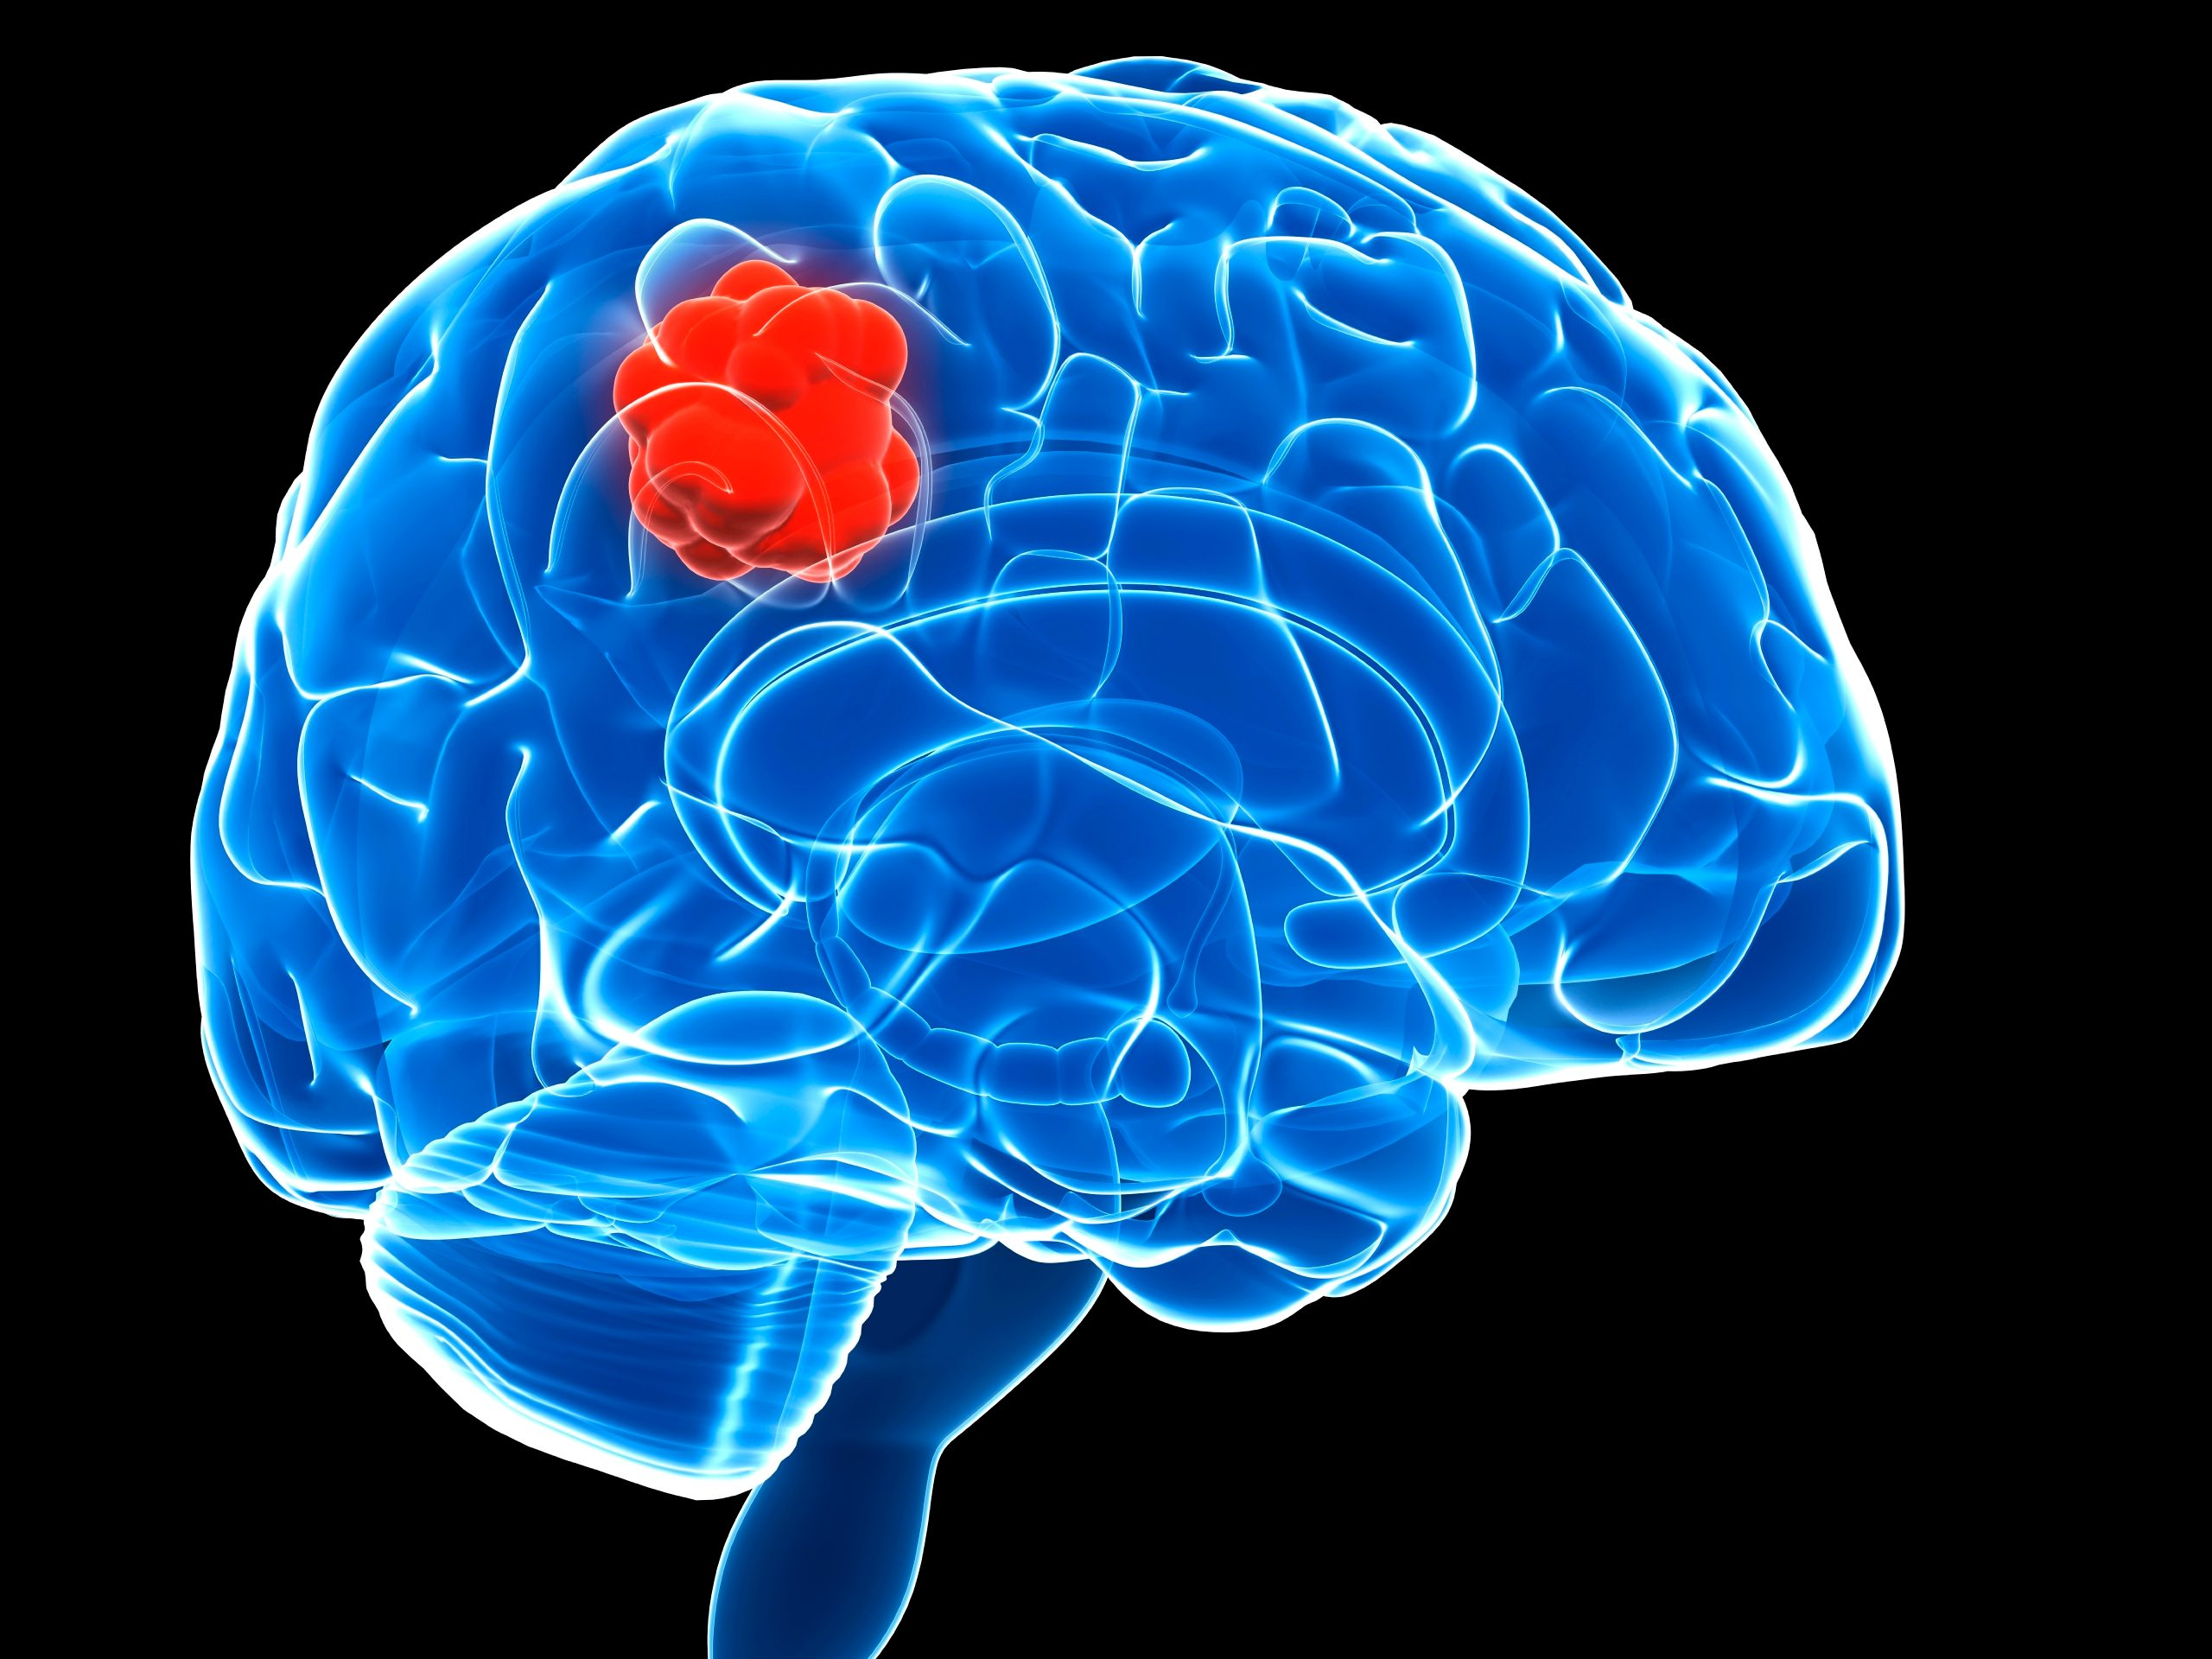 Cancerwise blog post: Coping with a brain tumor